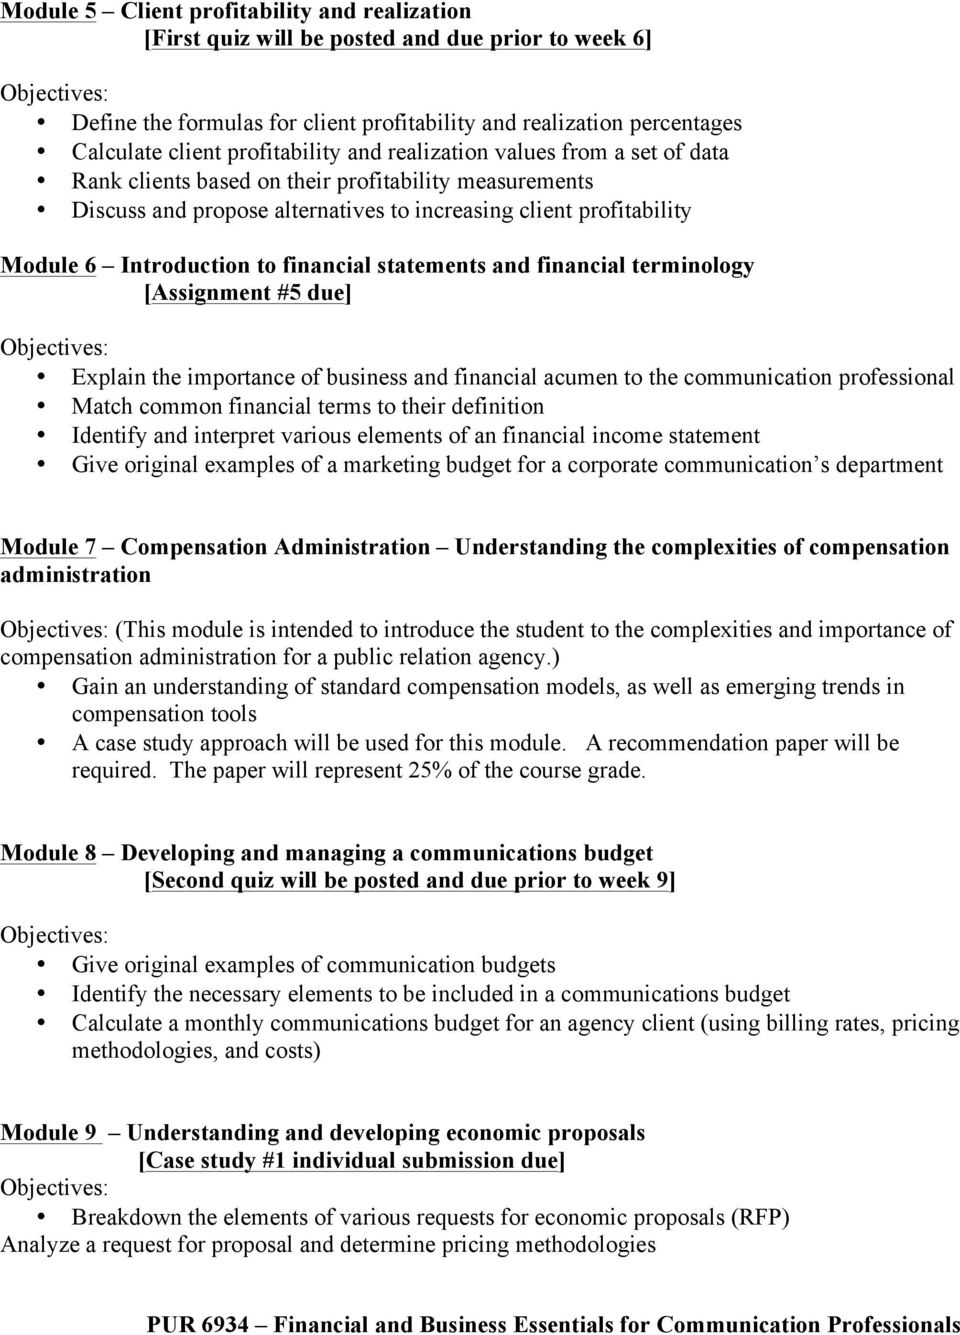 Introduction to financial statements and financial terminology [Assignment #5 due] Explain the importance of business and financial acumen to the communication professional Match common financial